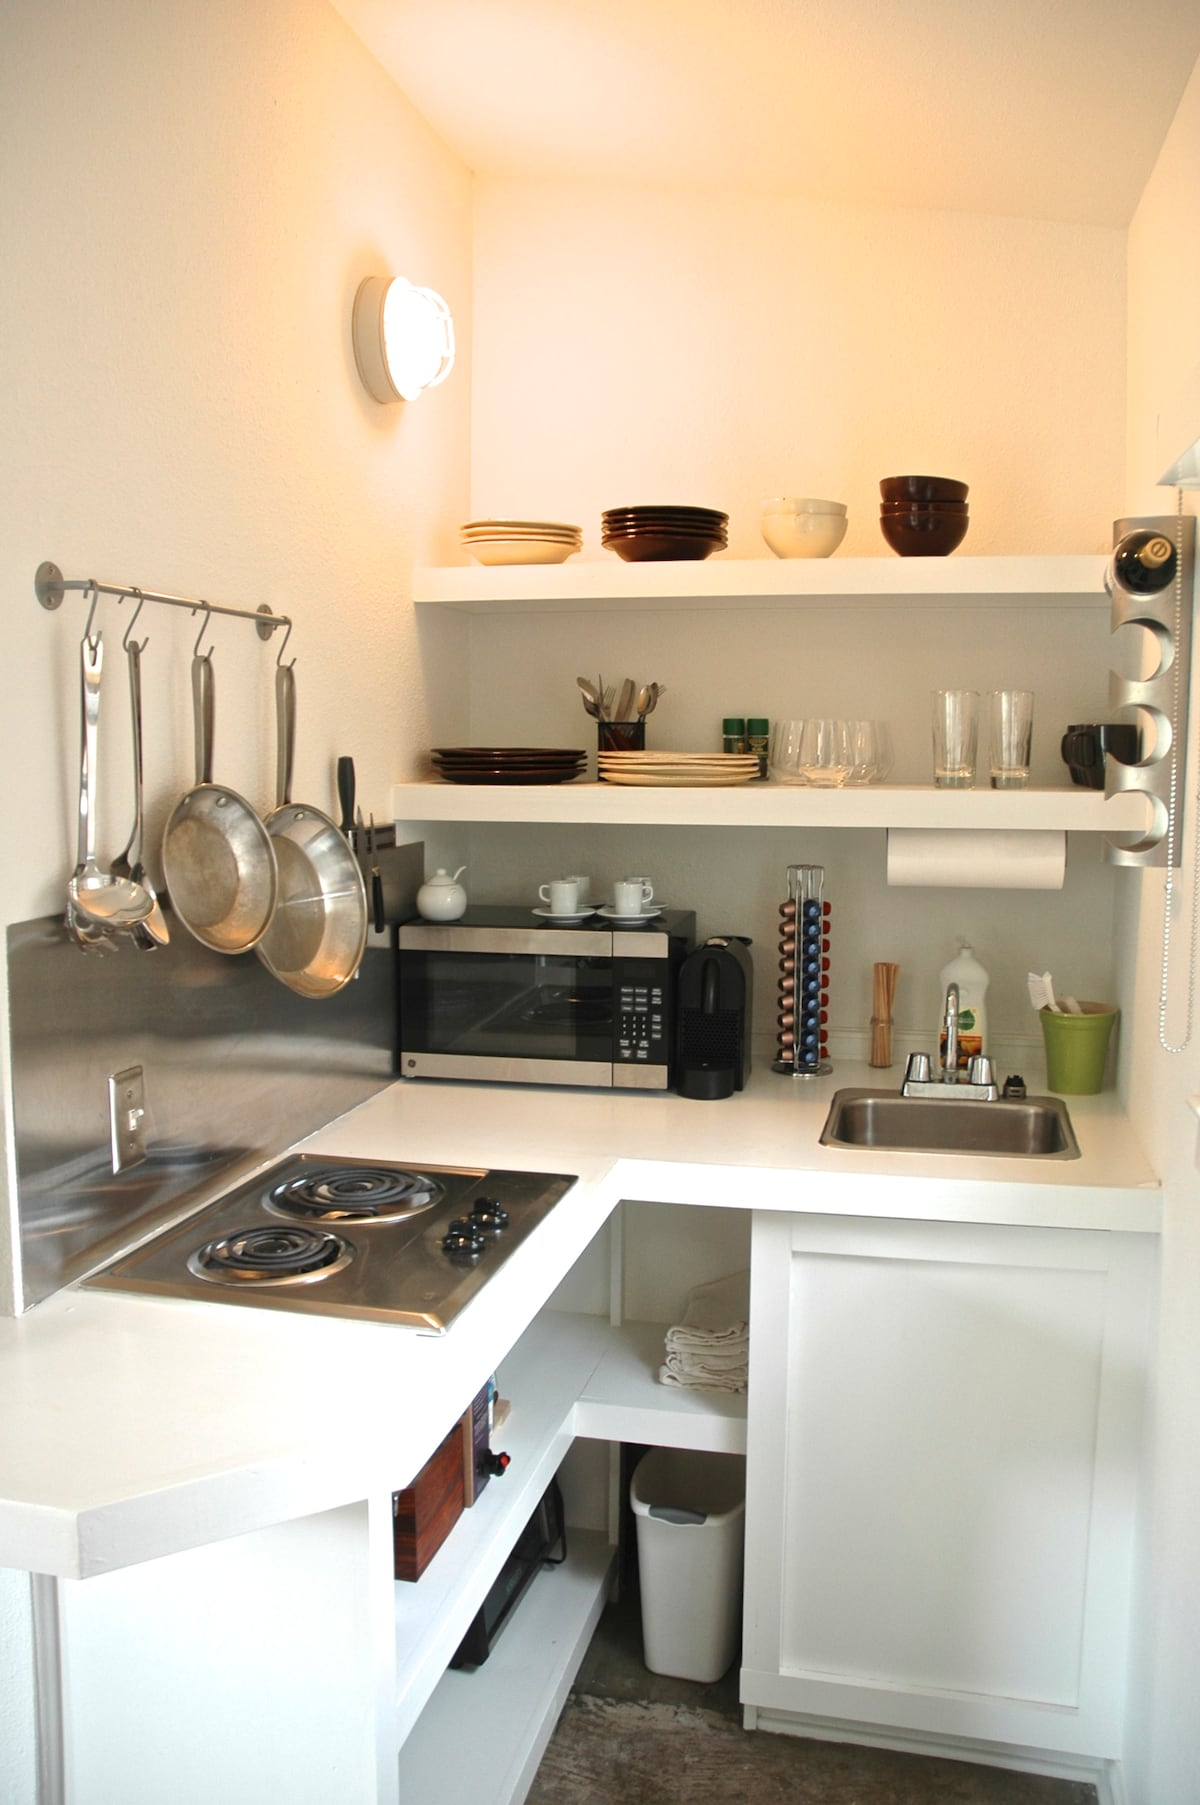 Kitchenette has a stove, microwave, Nespresso machine, and hand-made Italian dinnerware.